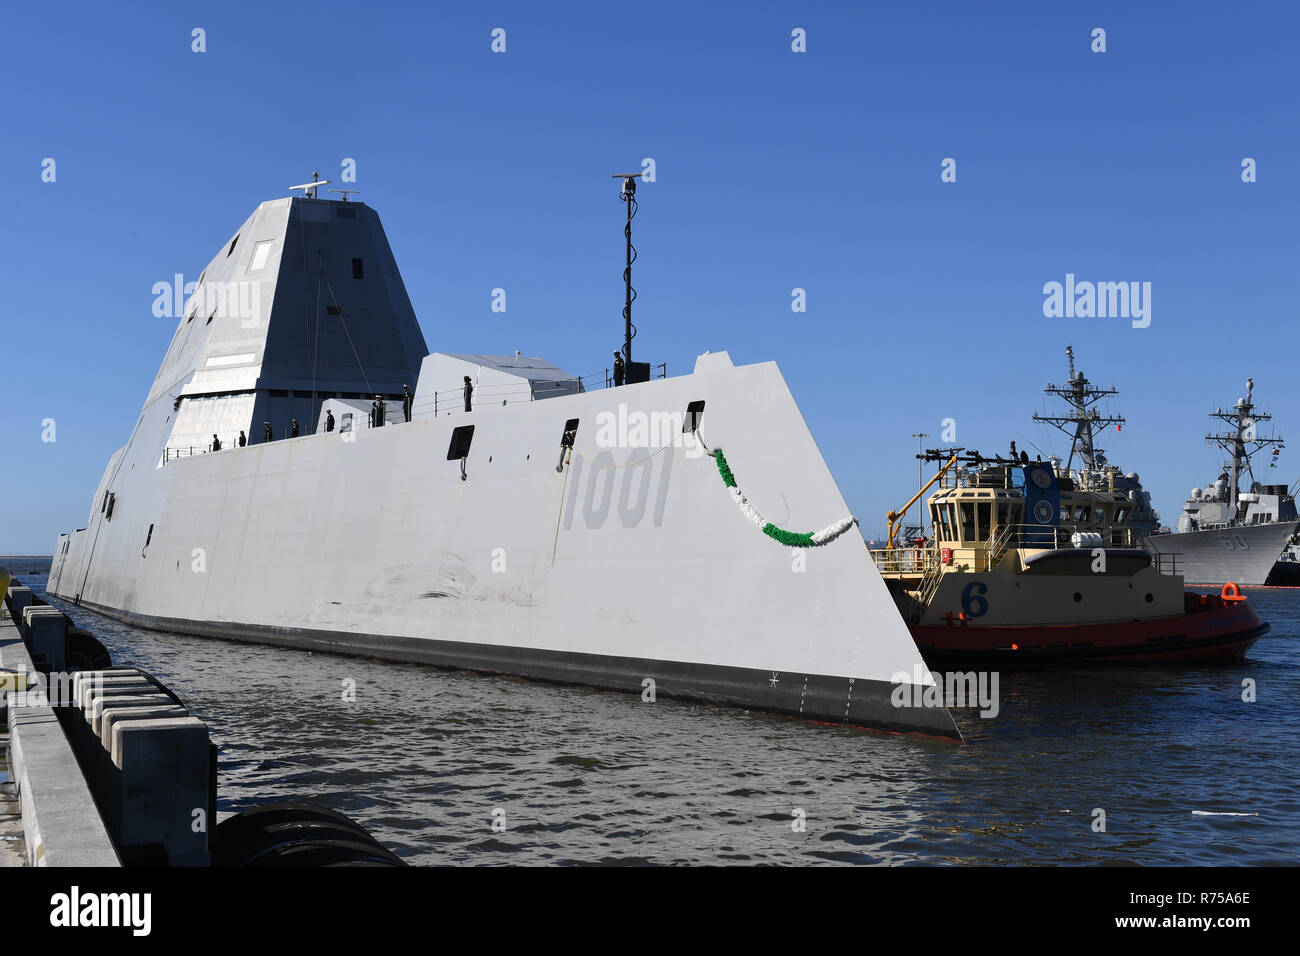 The Pre-Commissioning Unit Michael Monsoor docks at Naval Base San Diego December 7, 2018 in San Diego, California. The USS Michael Monsoor is the second ship in the Zumwalt-class of guided-missile destroyers and will undergo a combat test period before being commissioned into the Navy on January 26, 2019. Stock Photo